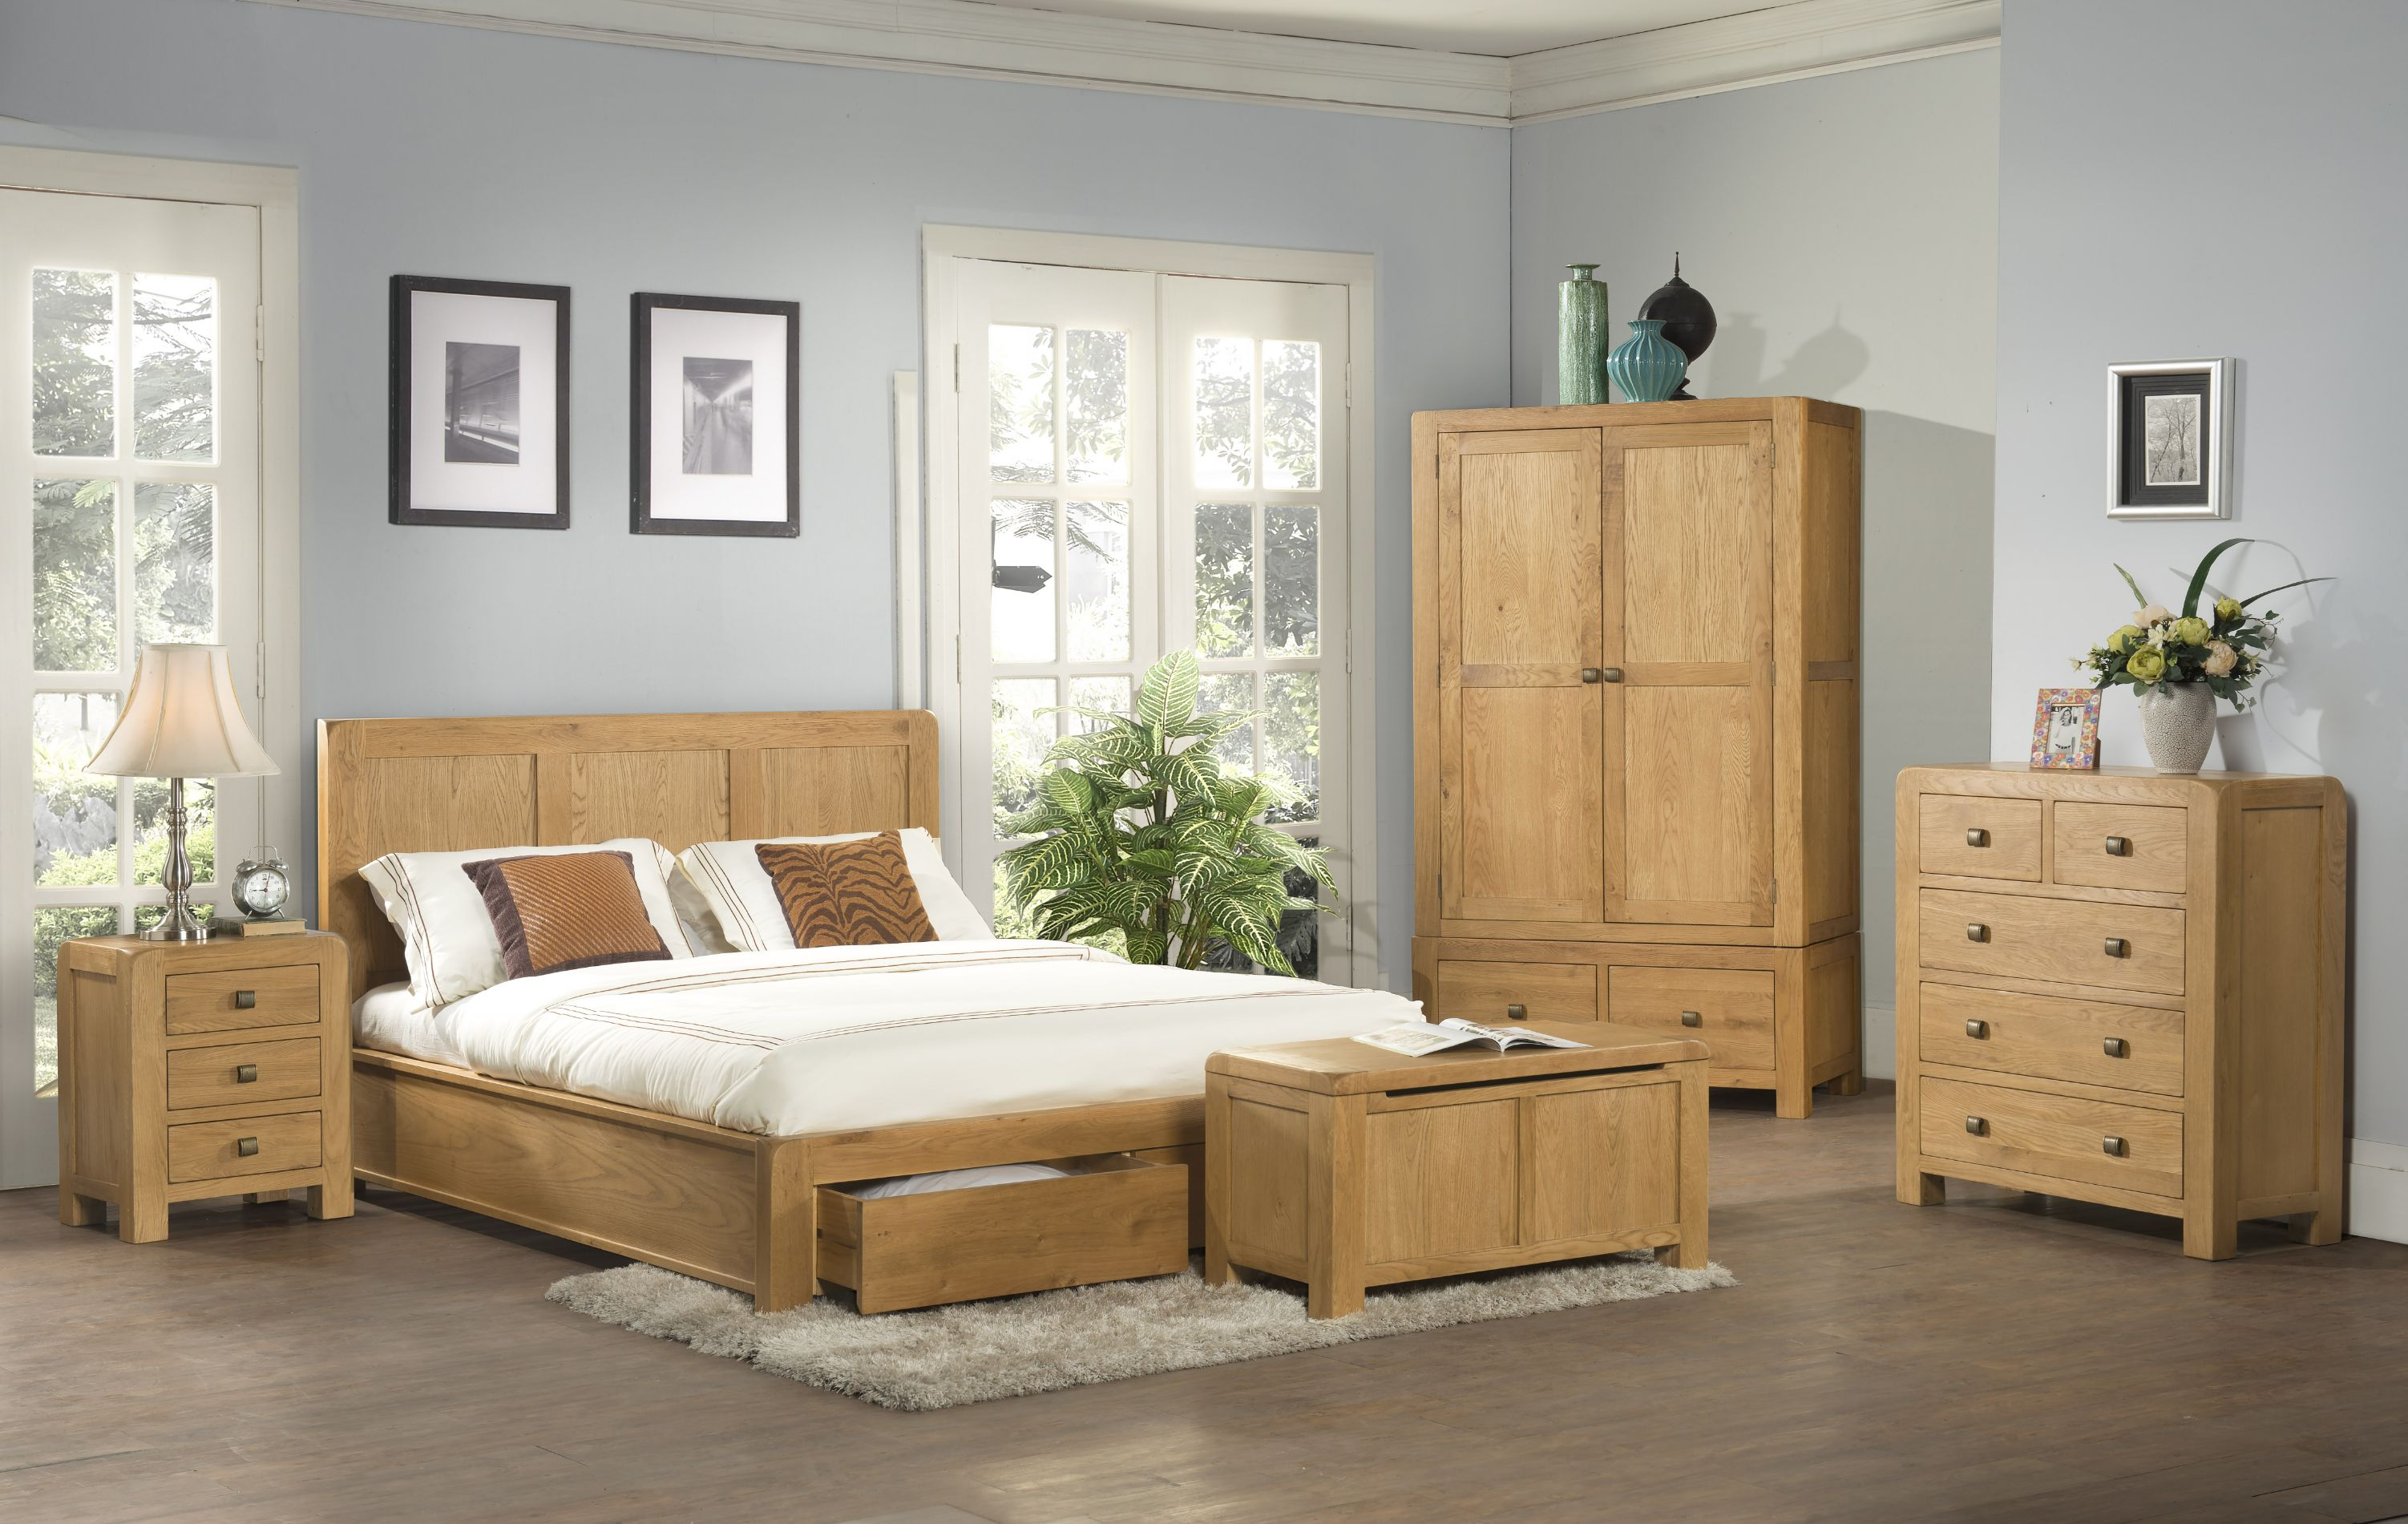 Devonshire Pine - DAVENPORT - Bedroom